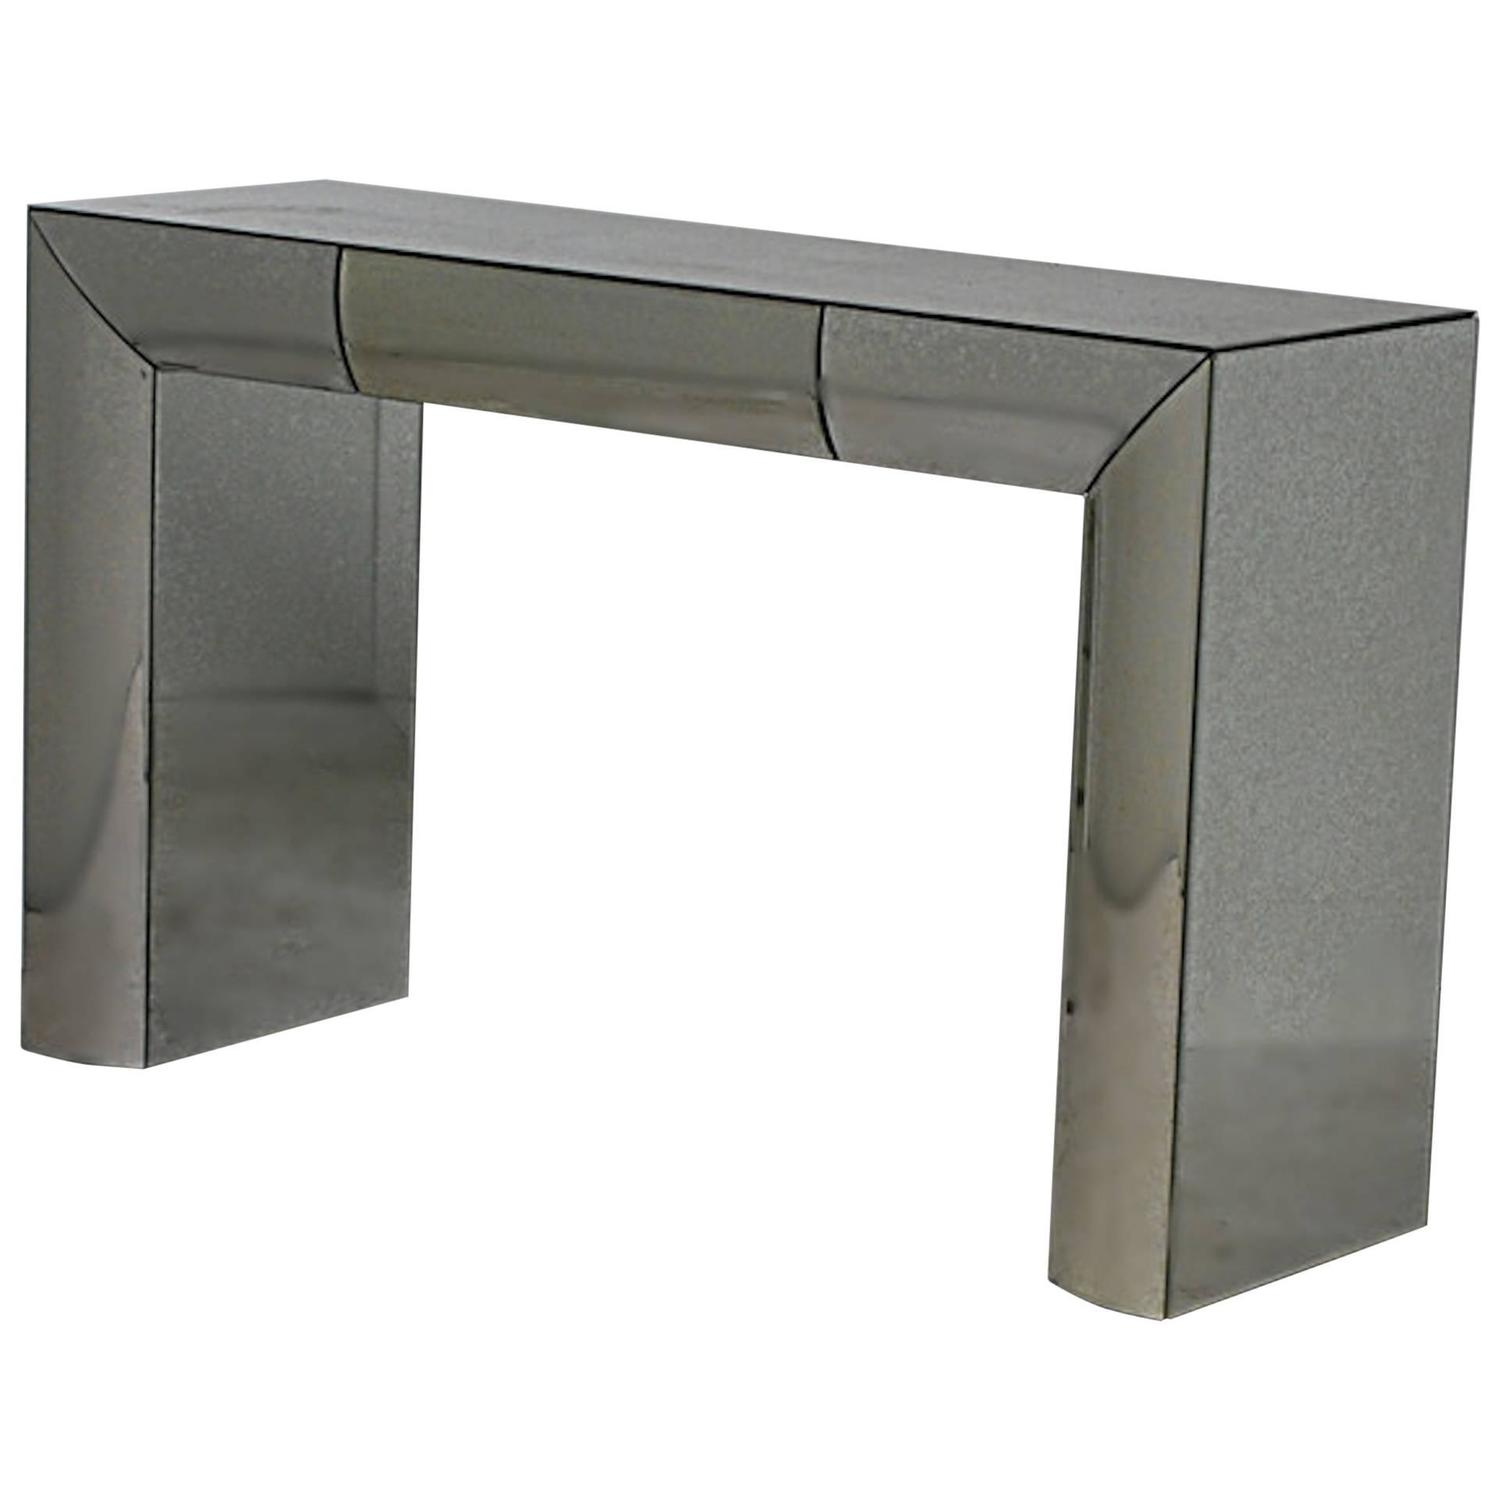 Moderne style mirrored console with drawer at 1stdibs for Mirrored console with drawers